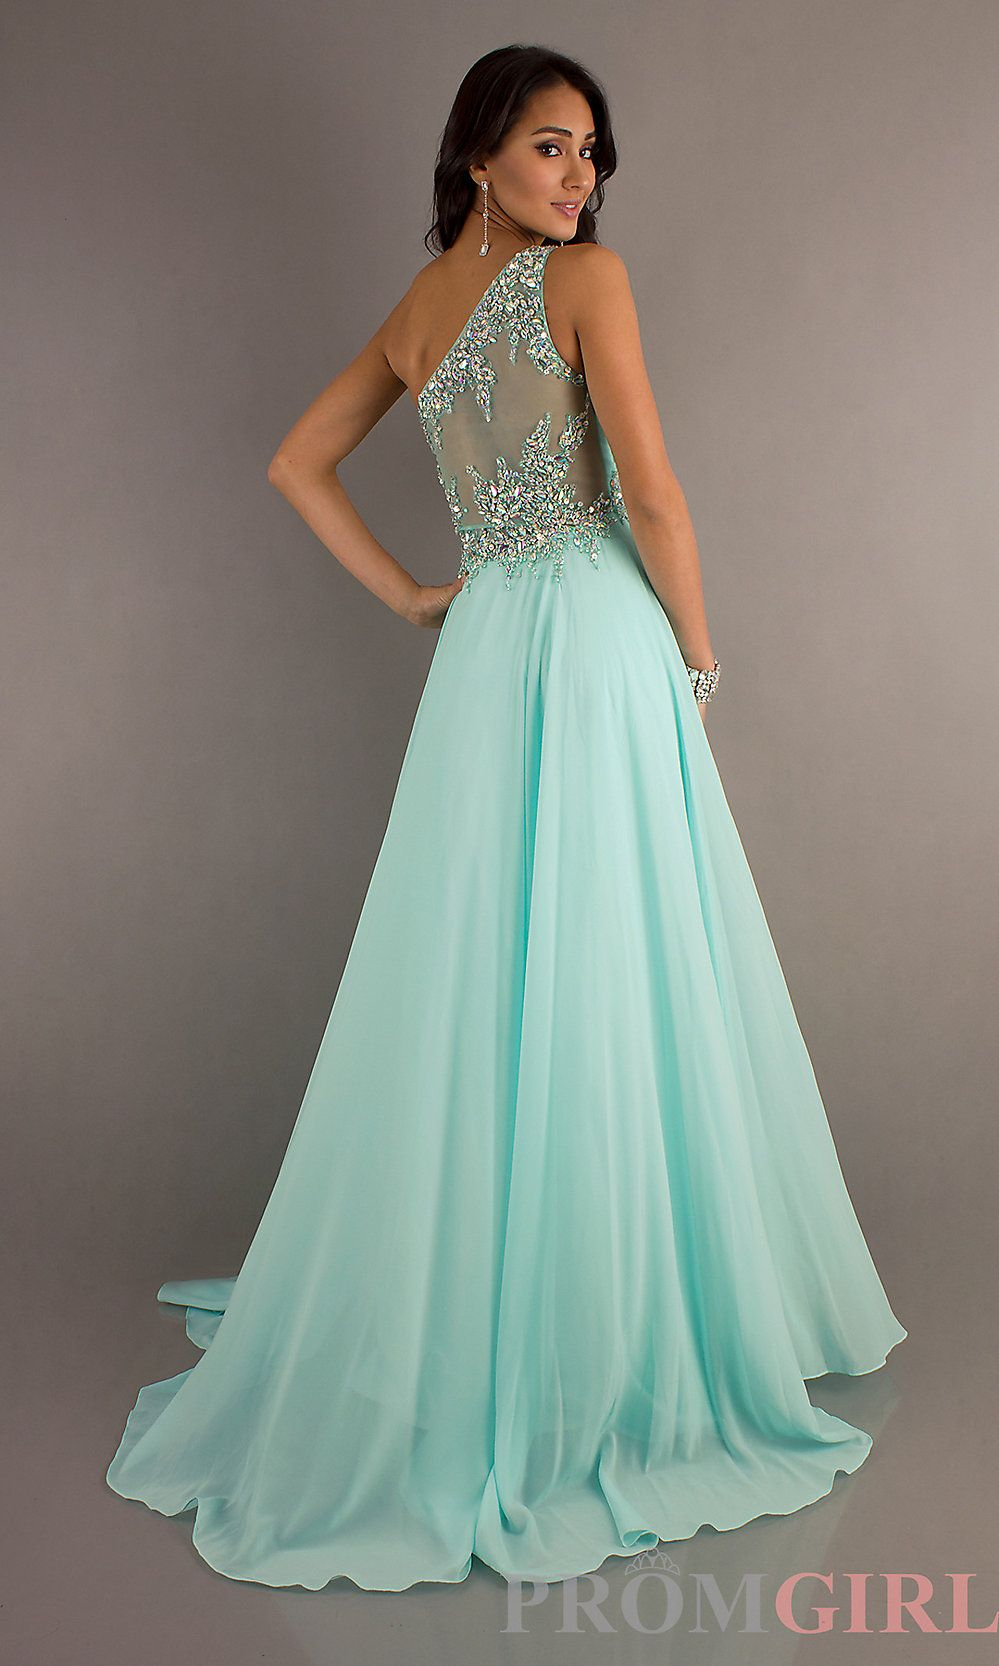 Pin by maura perri on prom pinterest long prom dresses prom and